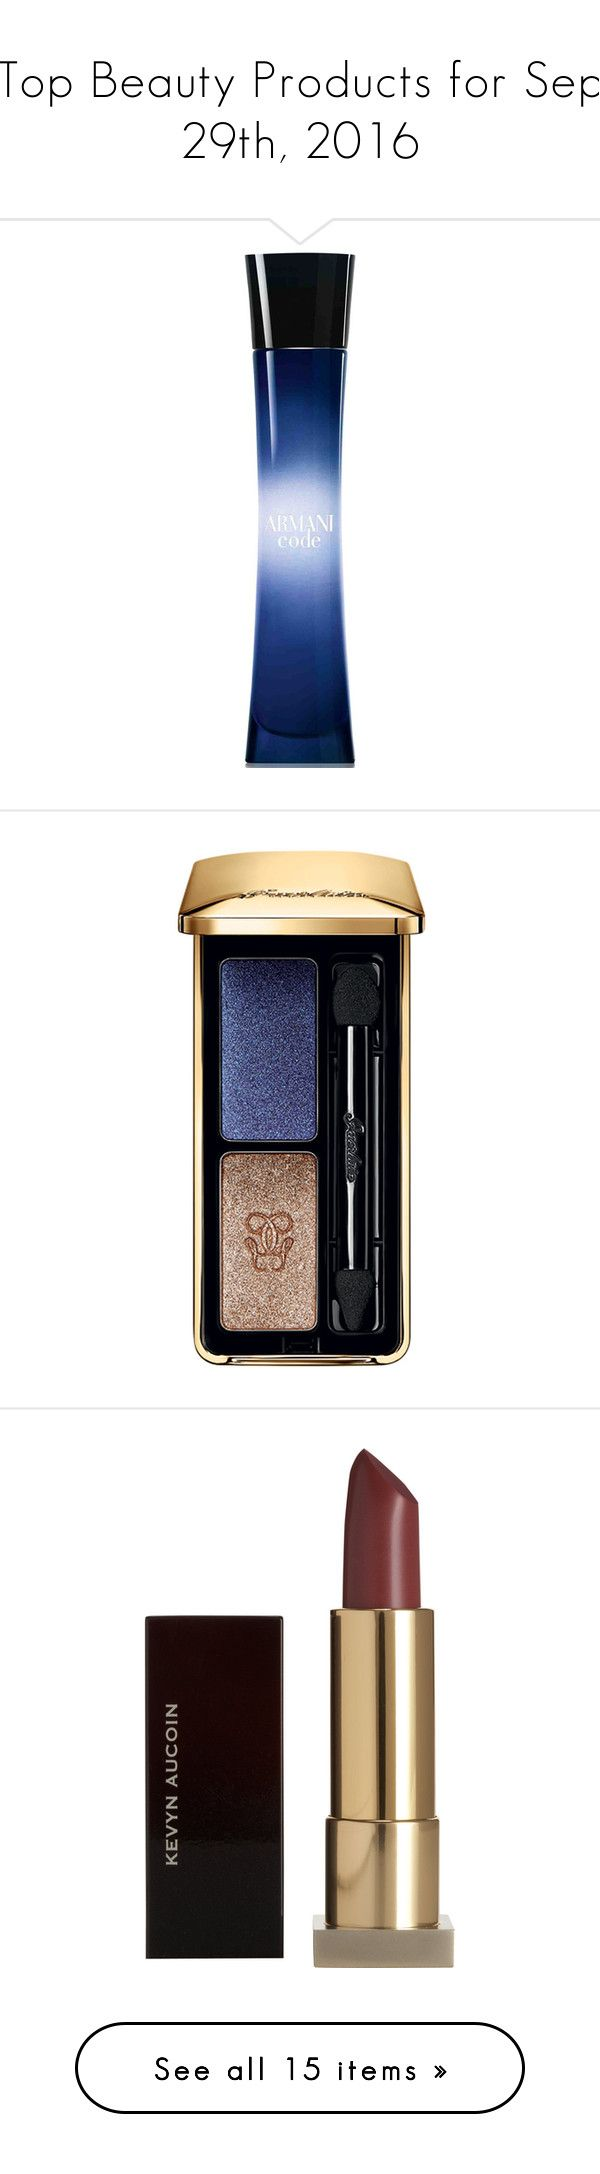 """""""Top Beauty Products for Sep 29th, 2016"""" by polyvore ❤ liked on Polyvore featuring beauty products, fragrance, no color, edp perfume, giorgio armani, eau de perfume, giorgio armani fragrance, giorgio armani perfume, makeup and eye makeup"""